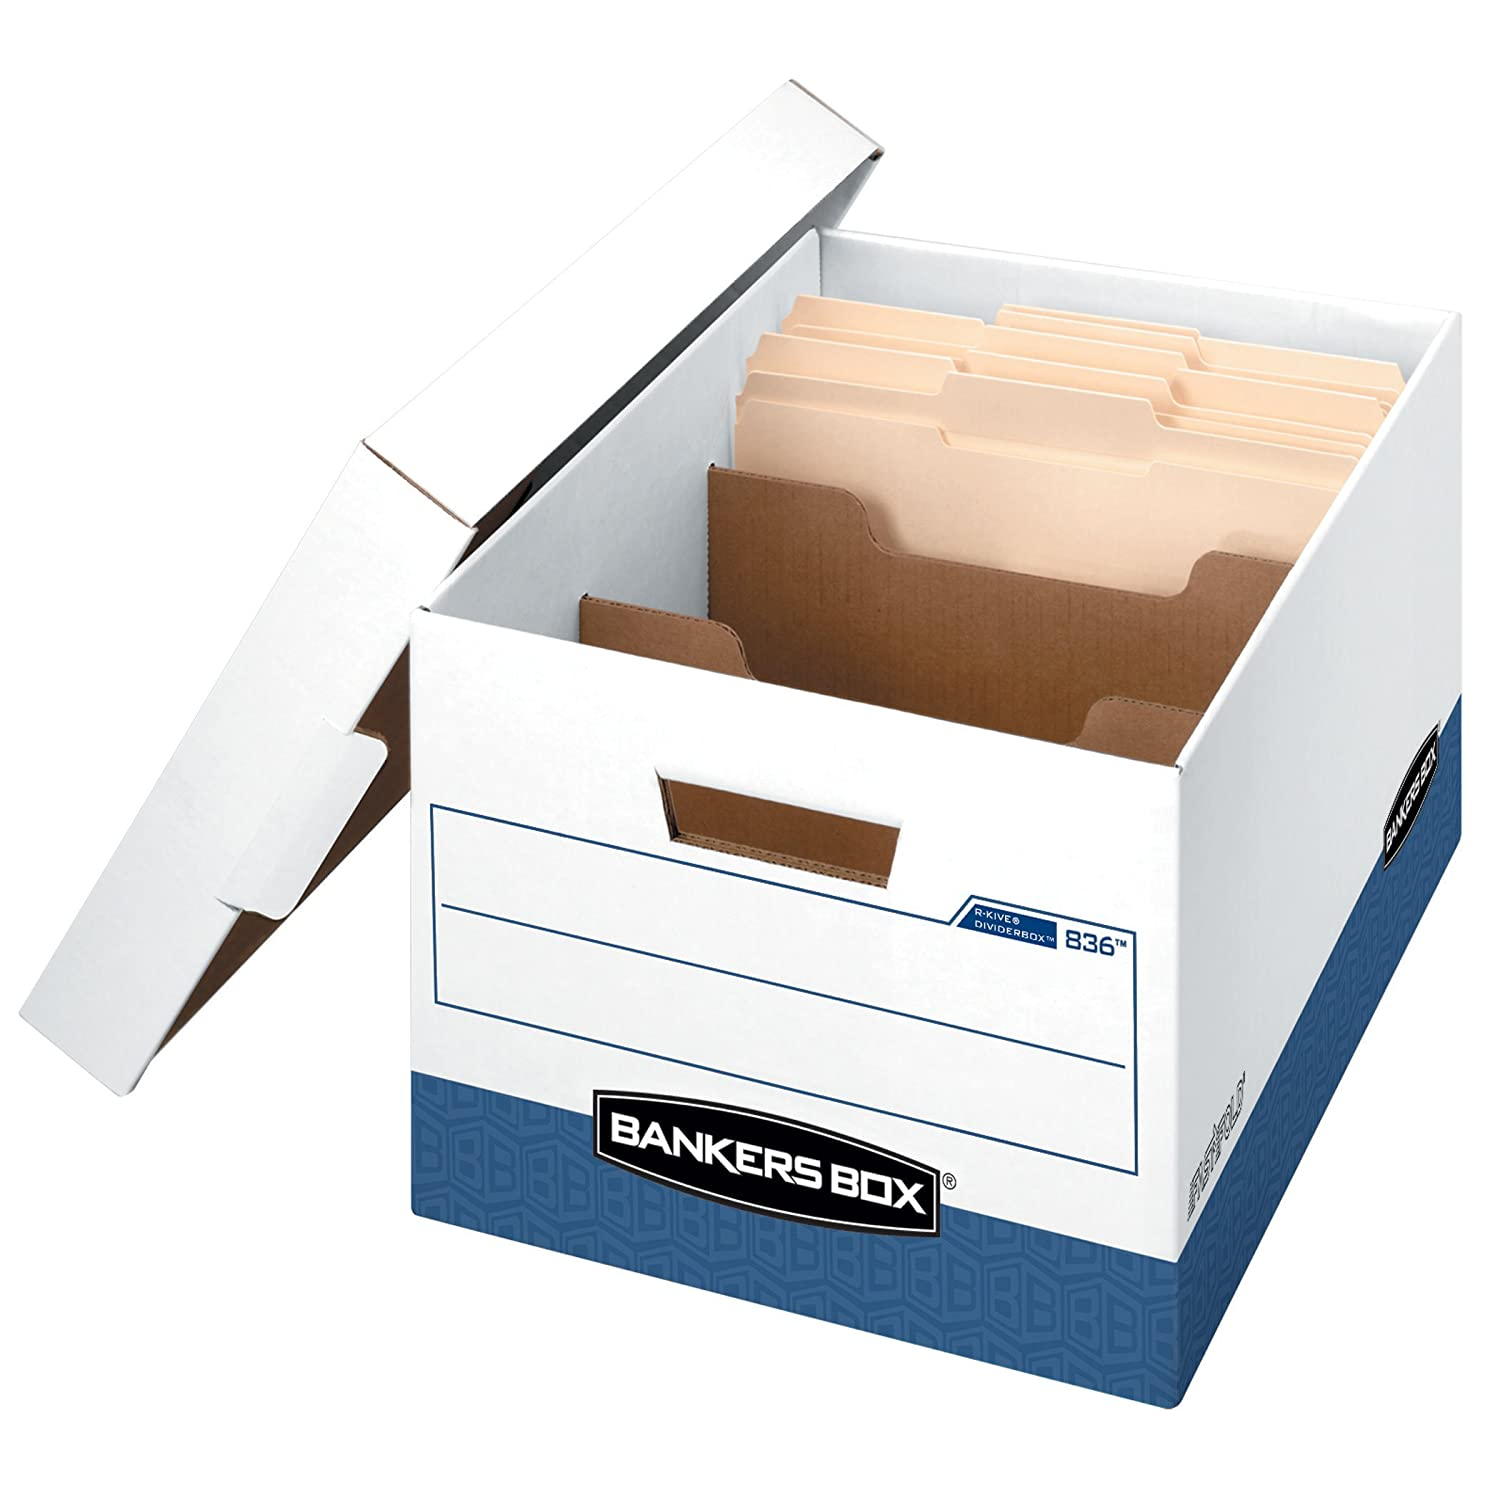 Bankers Box R-Kive Dividerbox Heavy-Duty Storage Boxes, Letter/Legal, 12 Pack (0083601) Fellowes 0083601